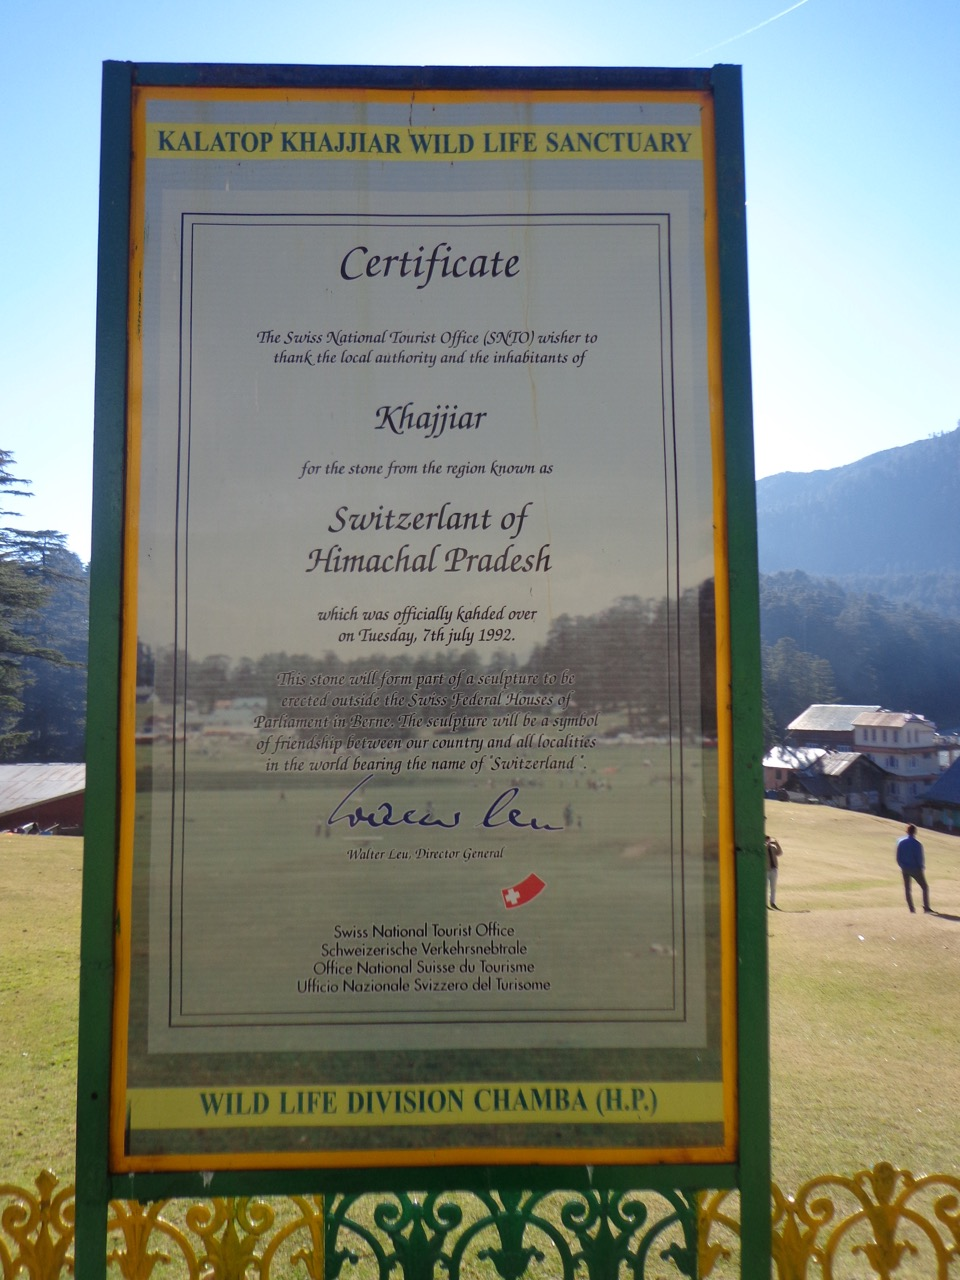 The plaque that says that Swiss National Tourist Office has certified this place as Switzerland of India.